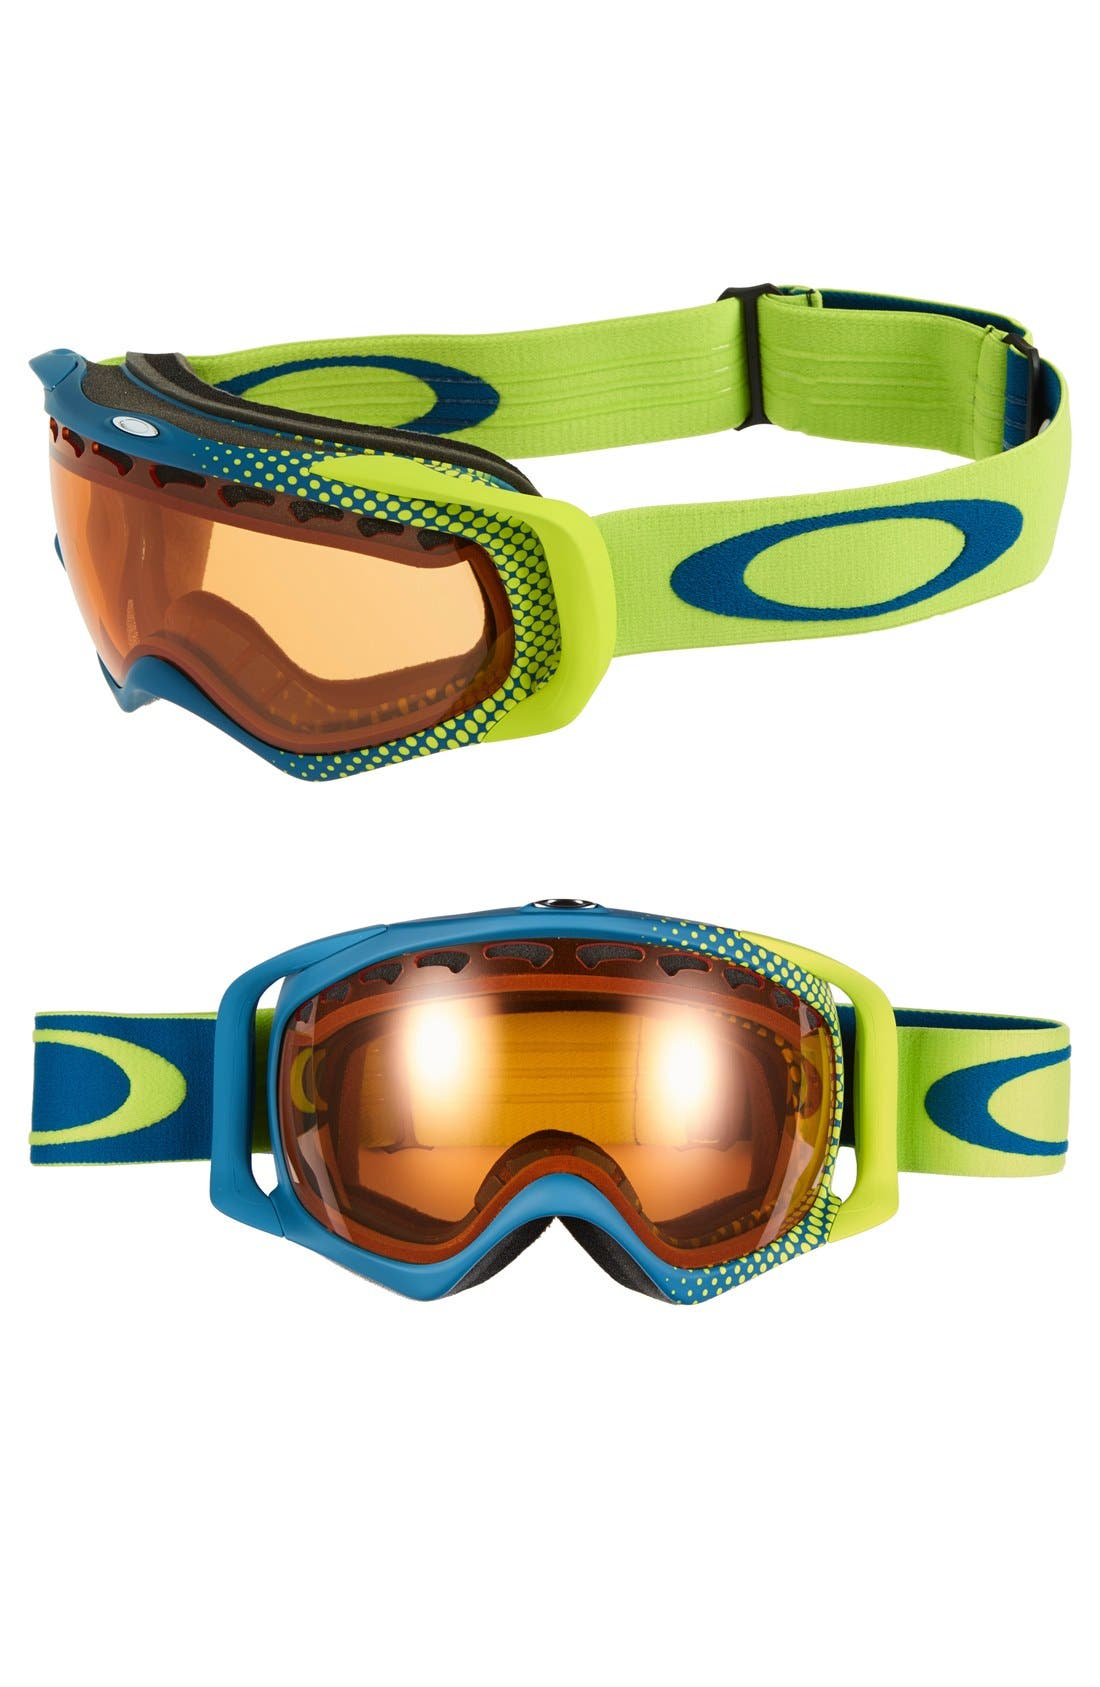 Alternate Image 1 Selected - Oakley 'Crowbar® Snow' Goggles